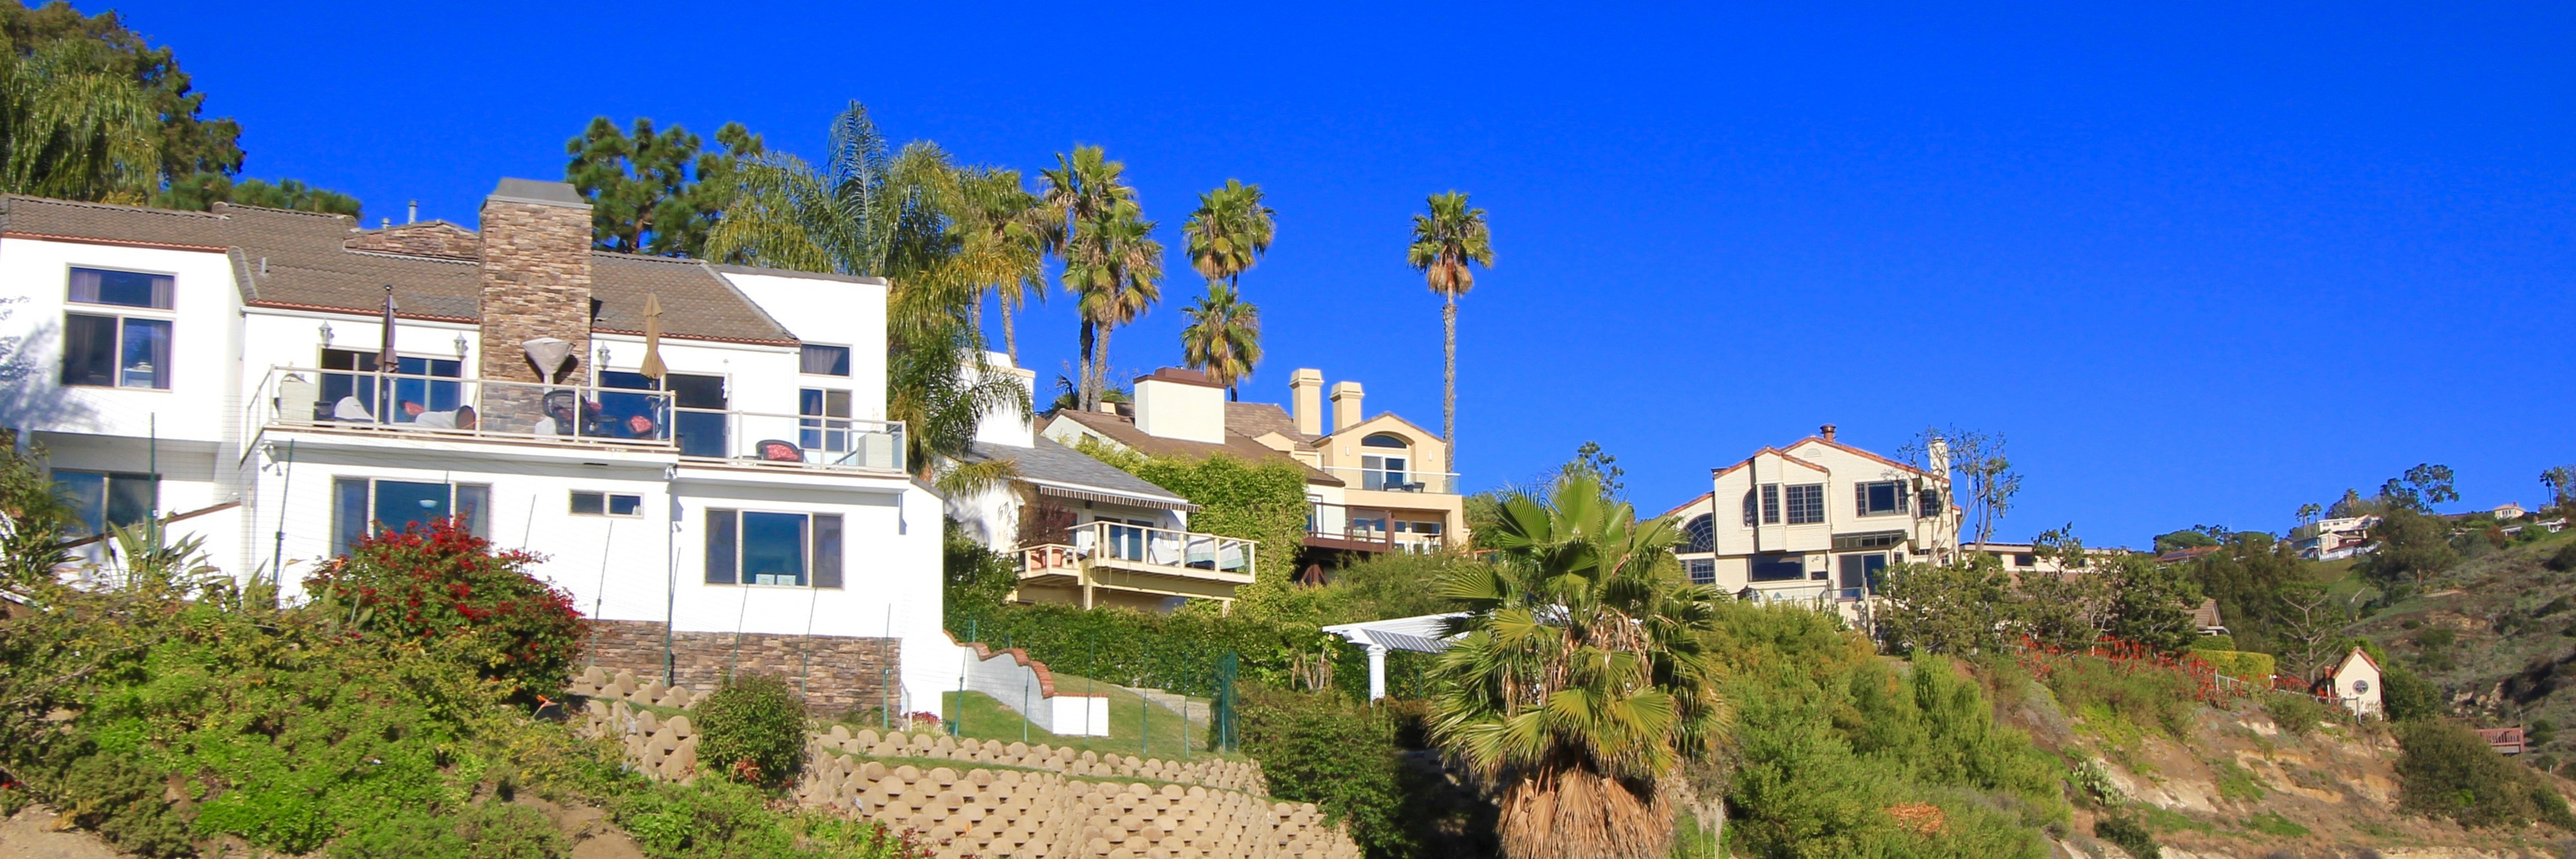 Park Avenue Estates is a high end beach community in Laguna Beach